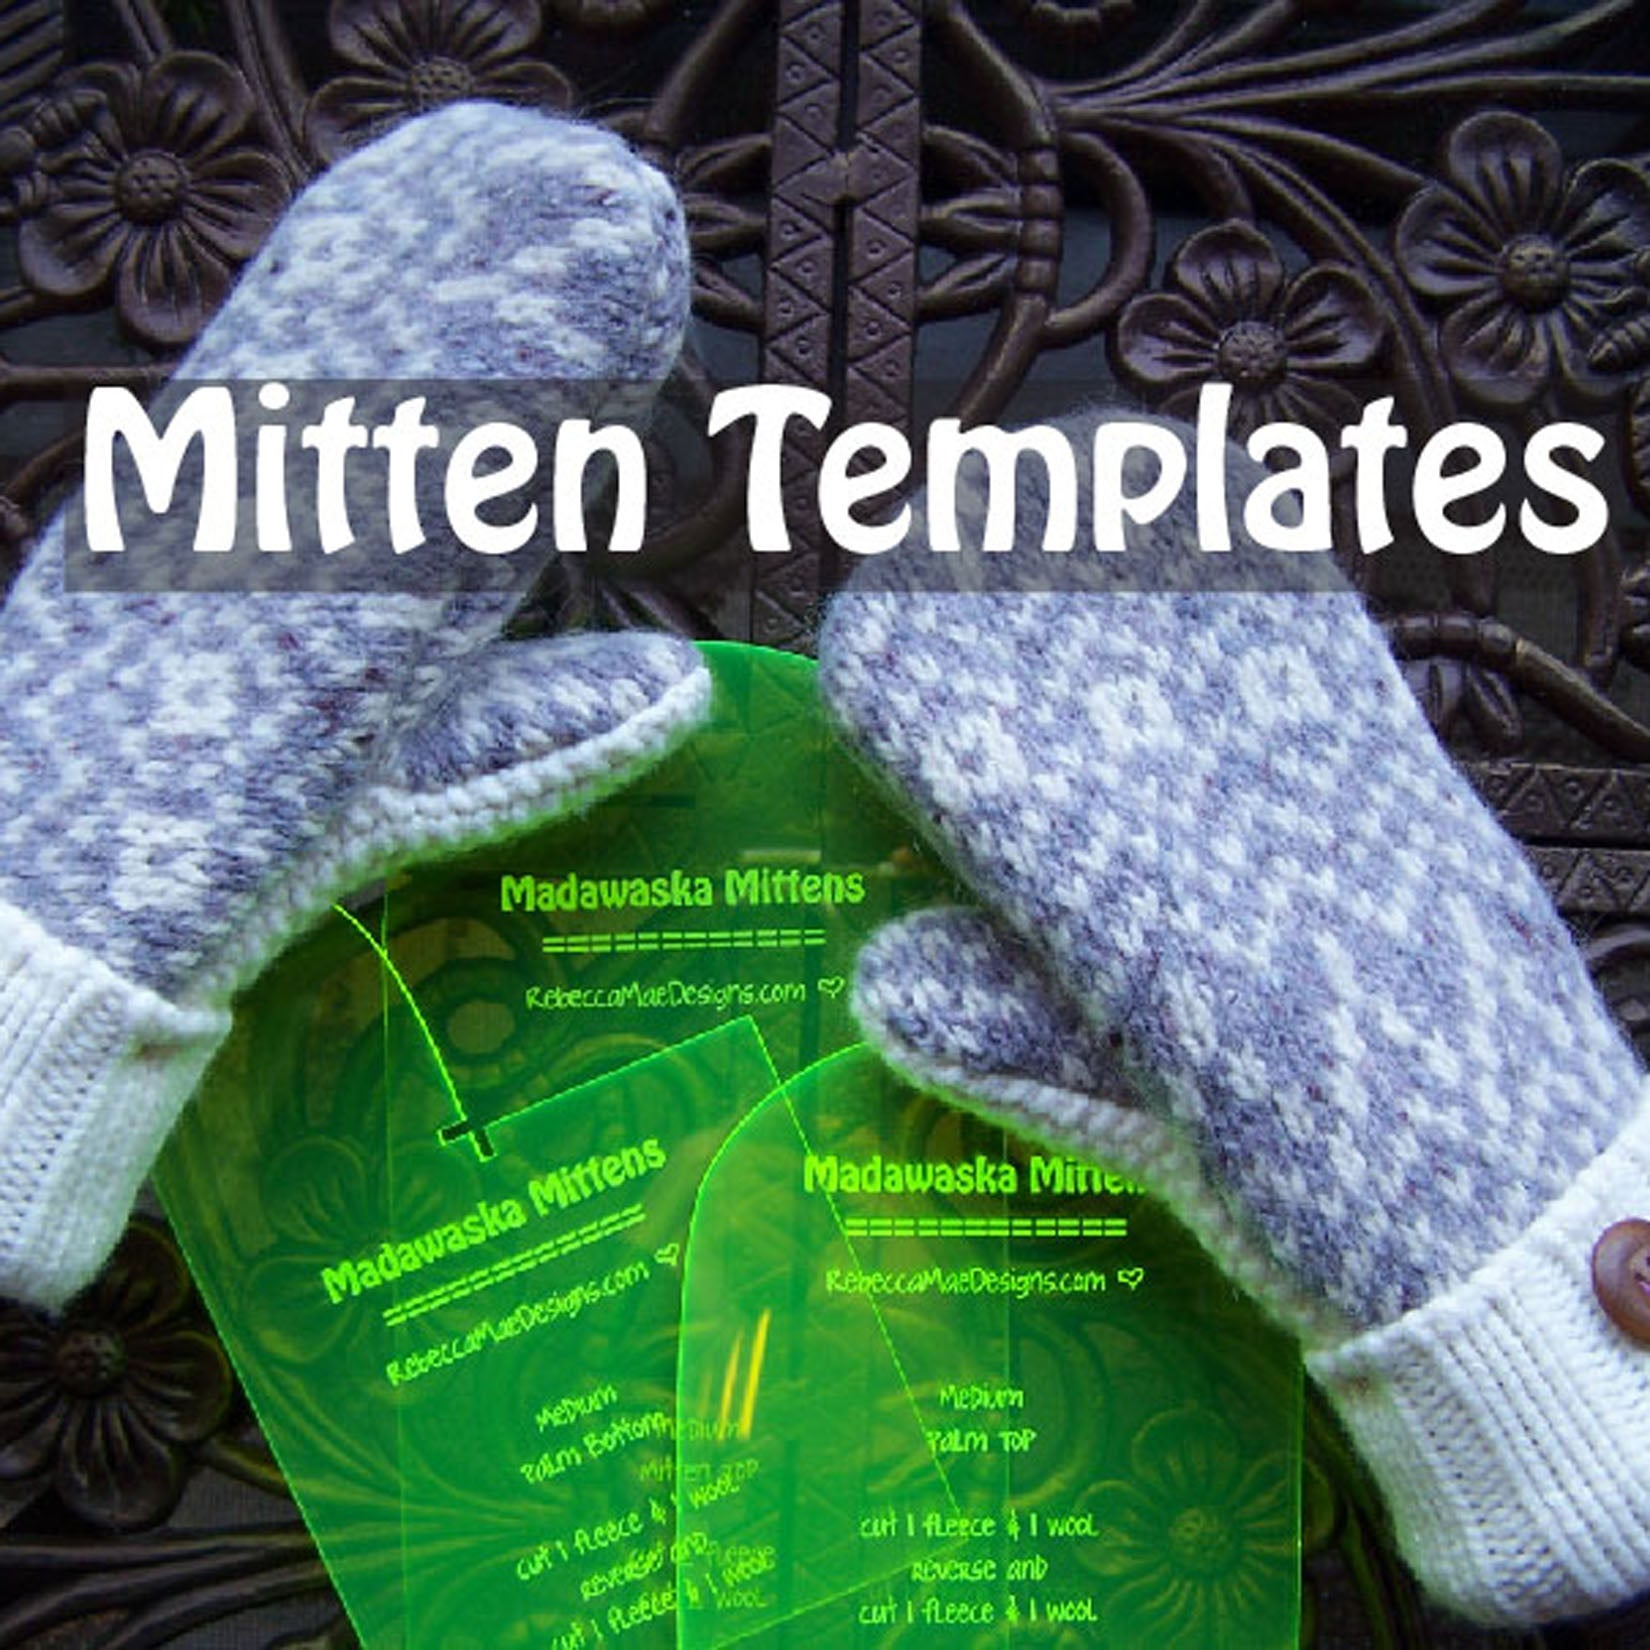 Mitten templates patterns by rebecca mae designs for Big cartel design templates